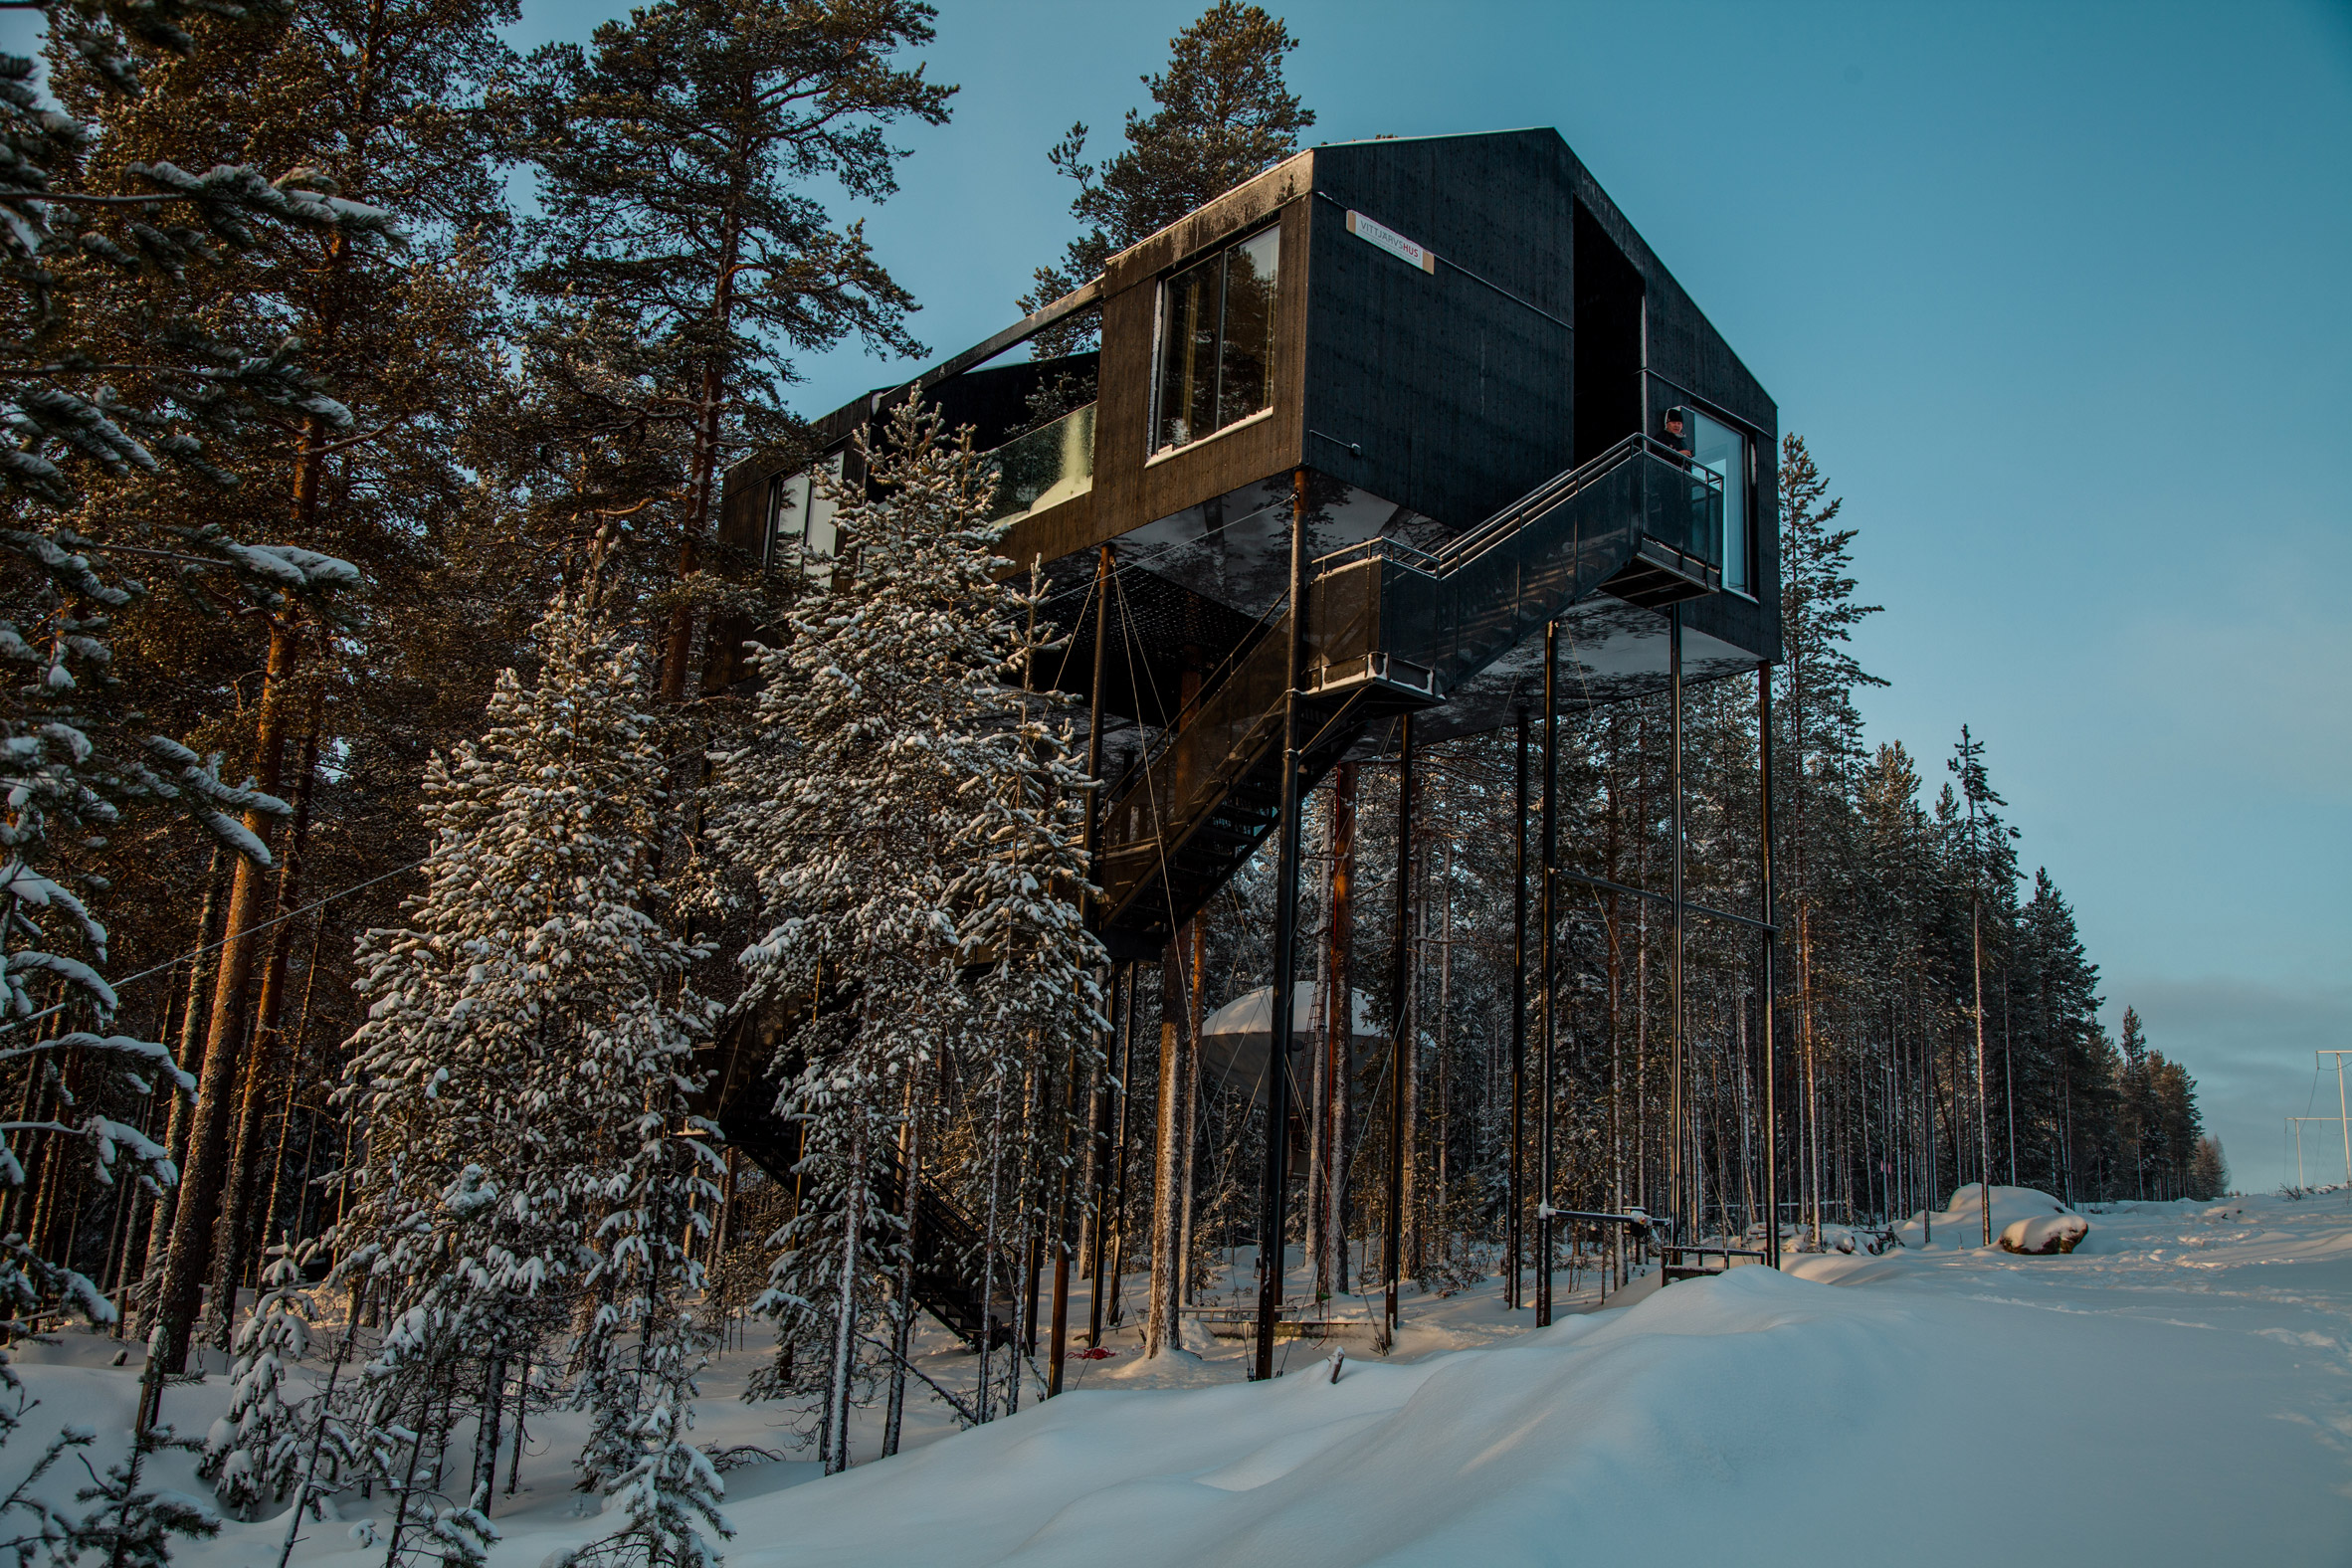 the-7th-room-tree-hotel-snohetta-sweden-architecture_dezeen_2364_col_1.jpg